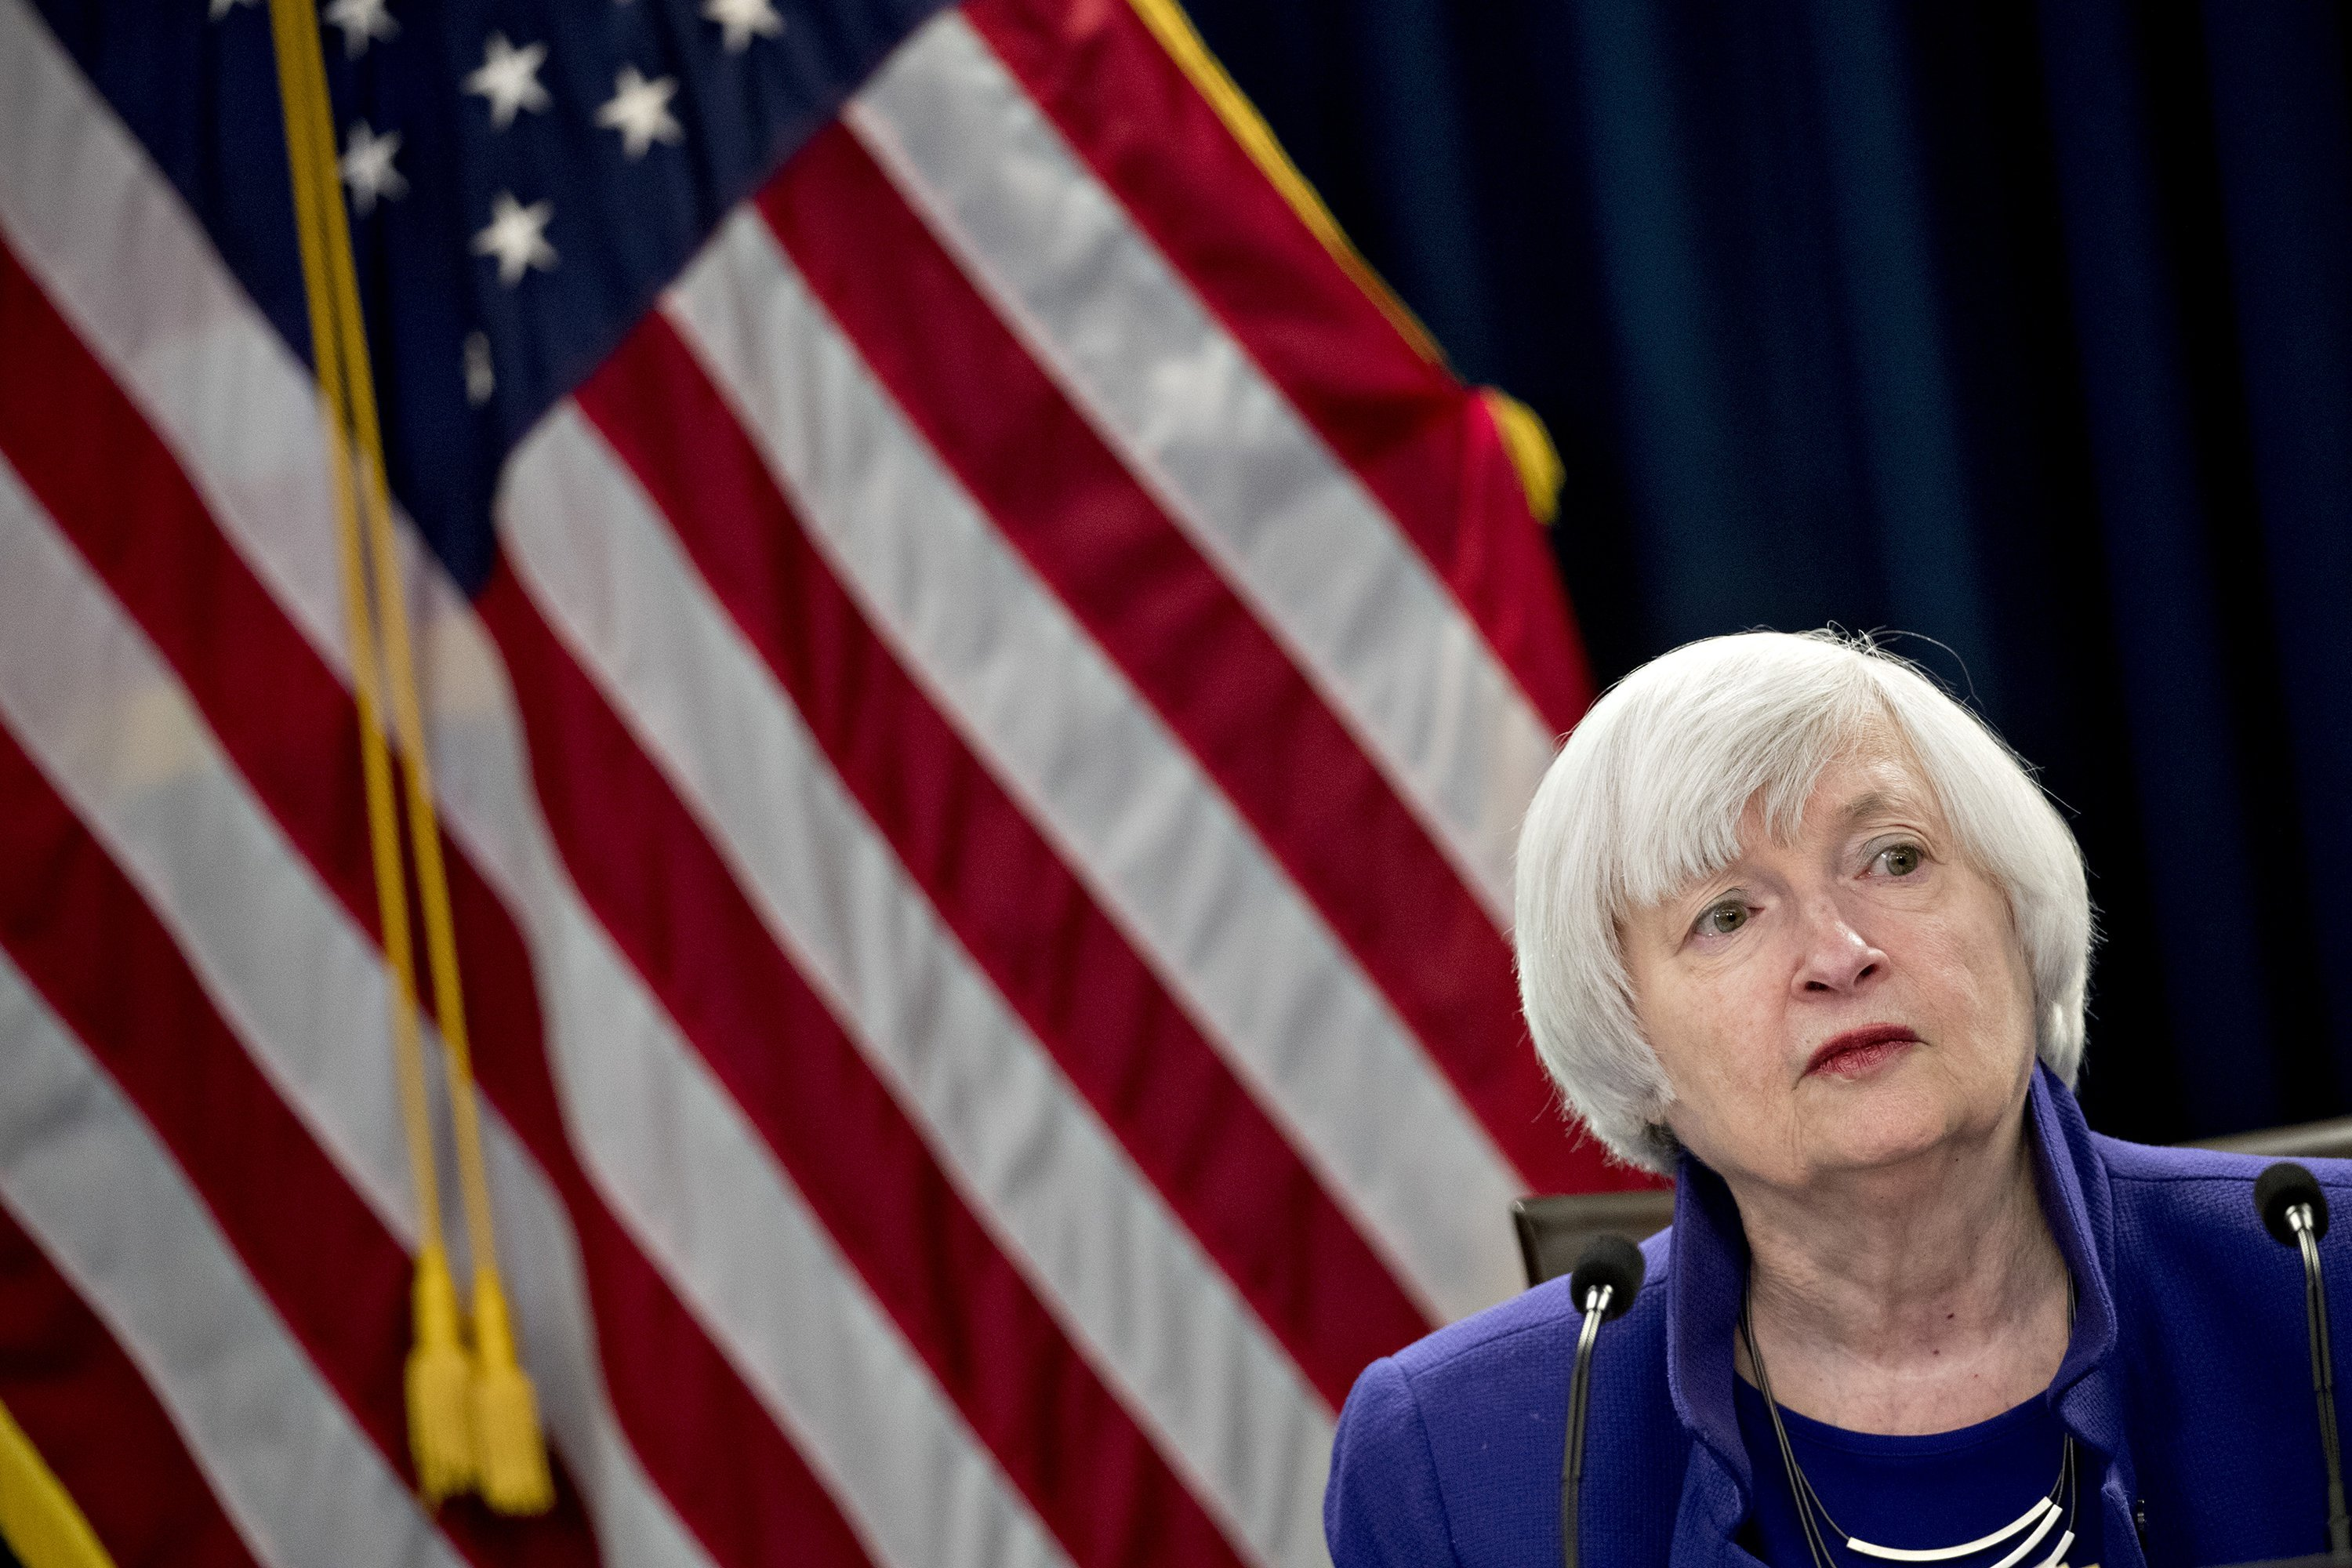 Angry savers emailed Janet Yellen: We're getting crushed by low rates